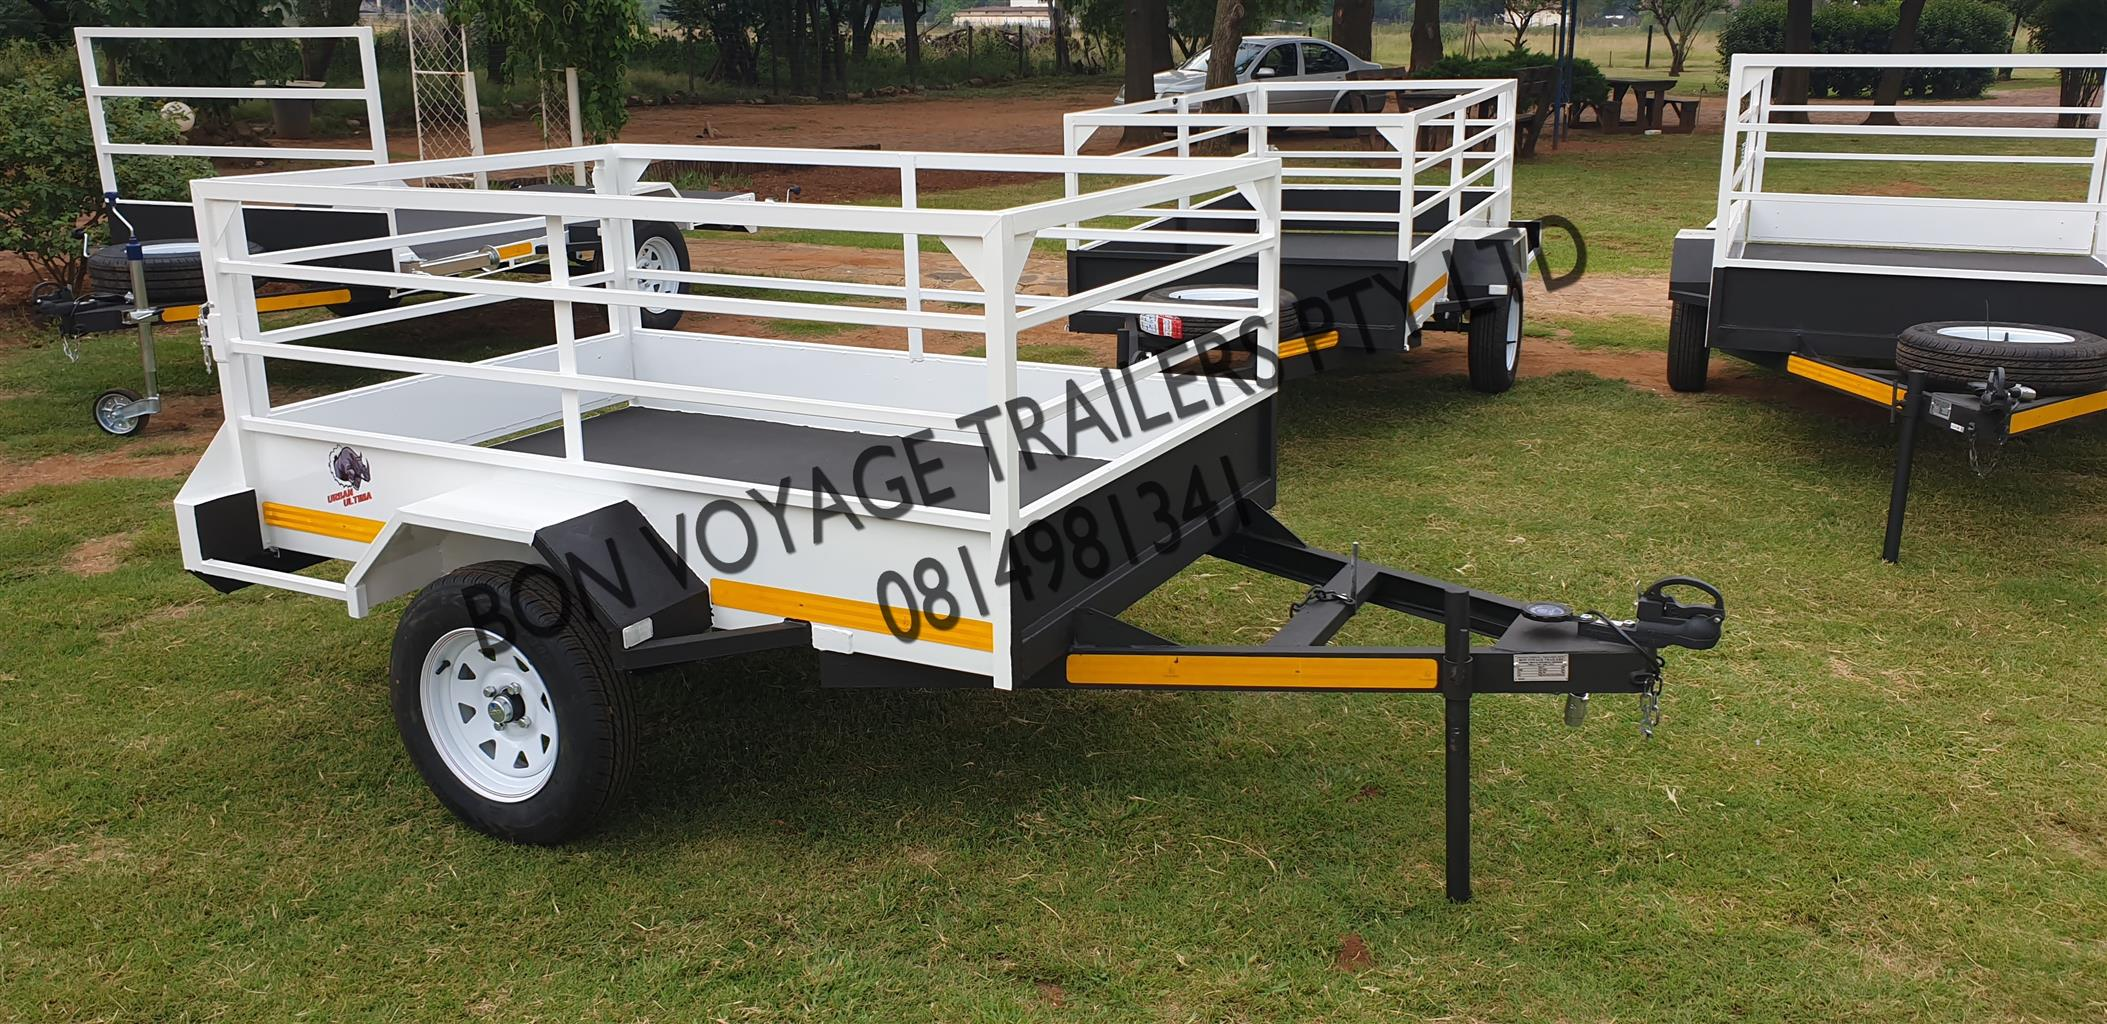 MARCH SPECIAL ON TRAILERS